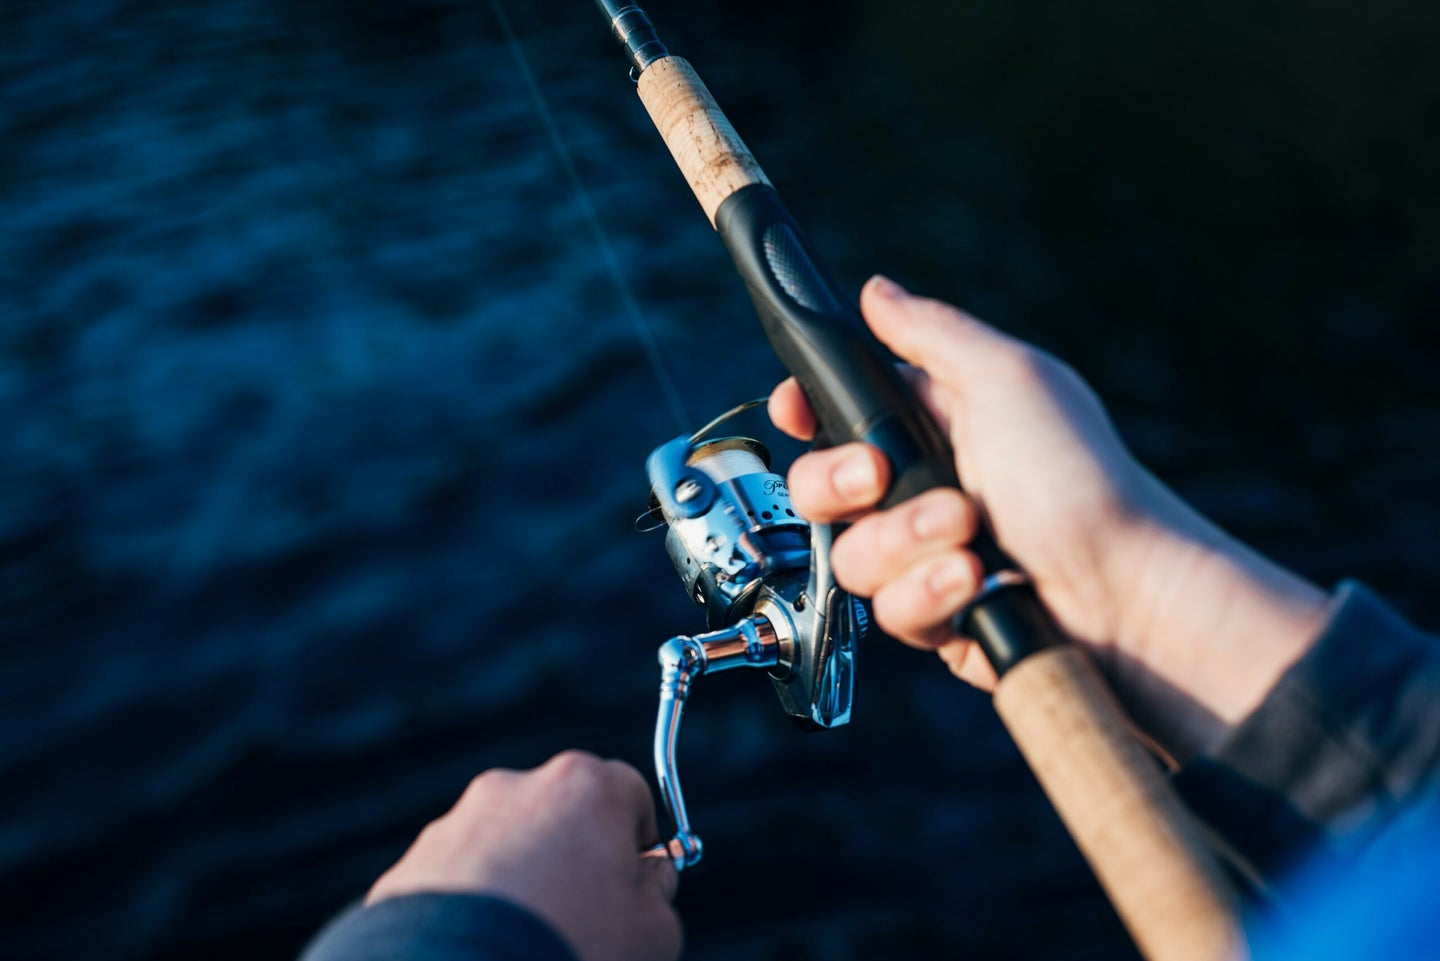 Holding and reeling a fishing pole.